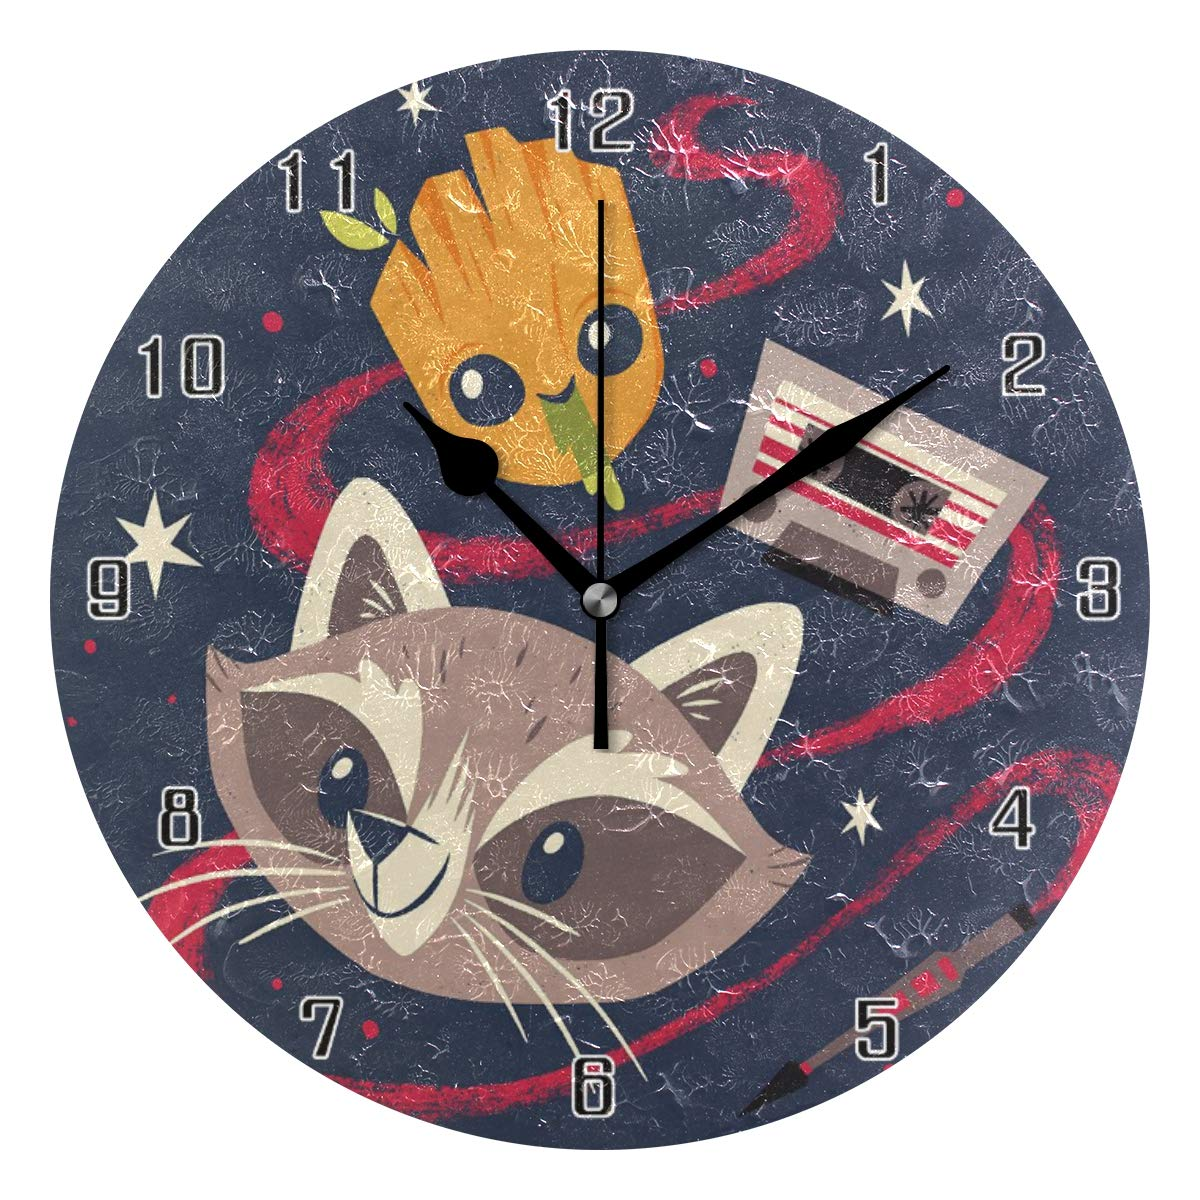 Lie fairy tale Rocket Raccoon and Groot World Round Wall Clock Home Decor Clock Battery Operated Silent Non -Ticking Desk Clock for Home,Office,School (10 Inch)